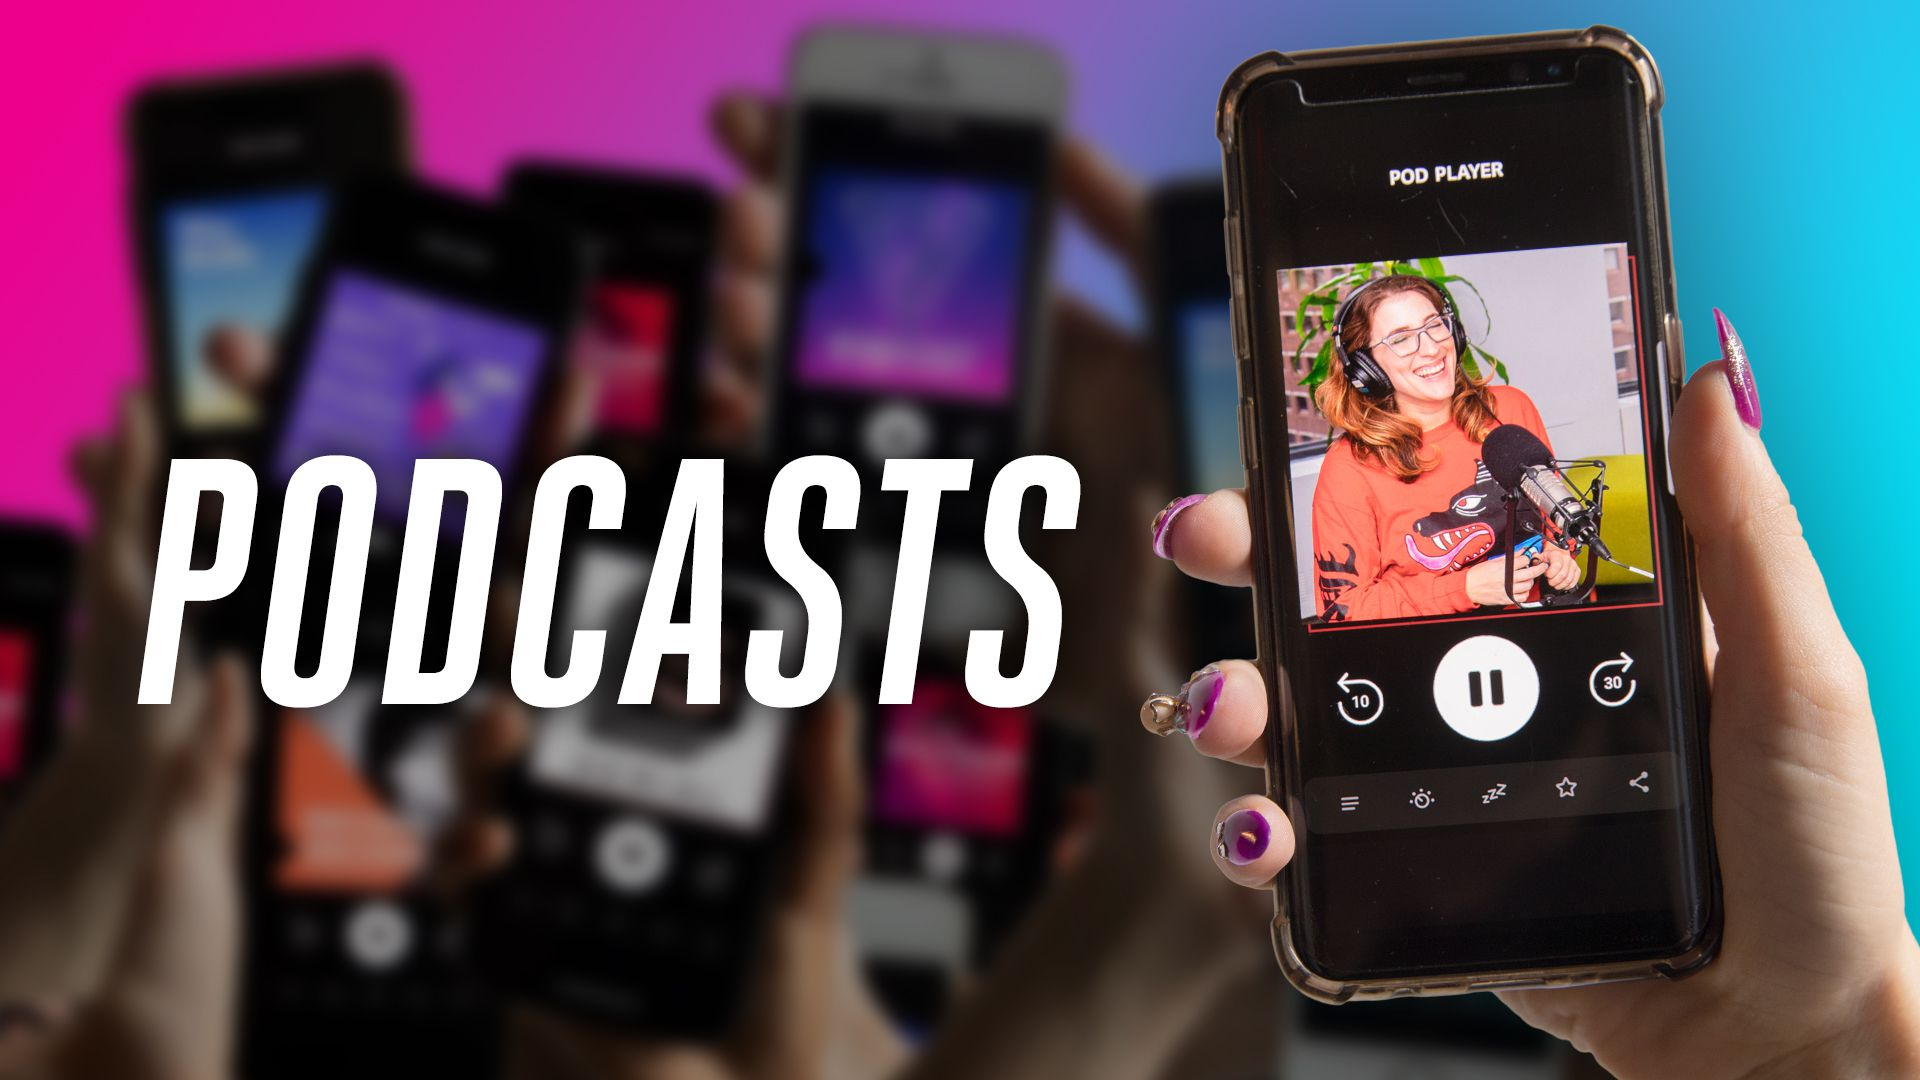 Podcast wars: $100 million startup Luminary launches Tuesday